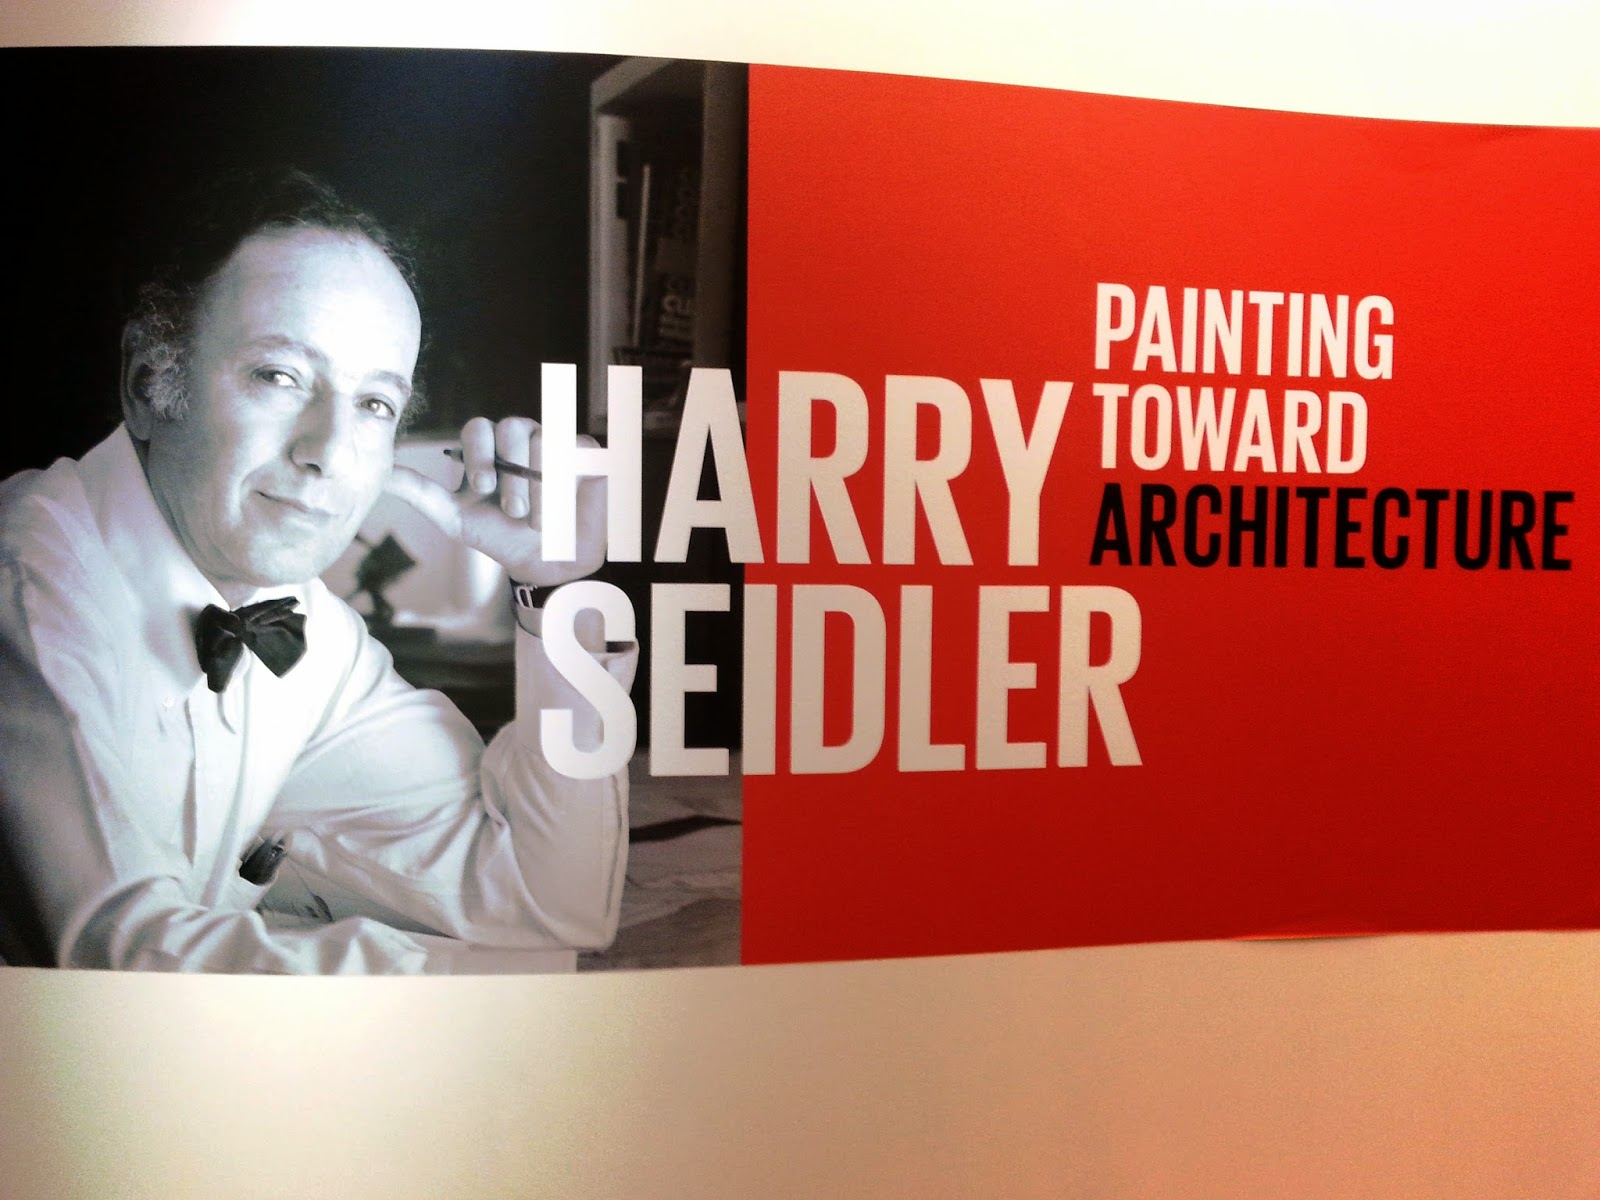 Entry sign for the Harry Seidler: Painting towards architecture exhibition.